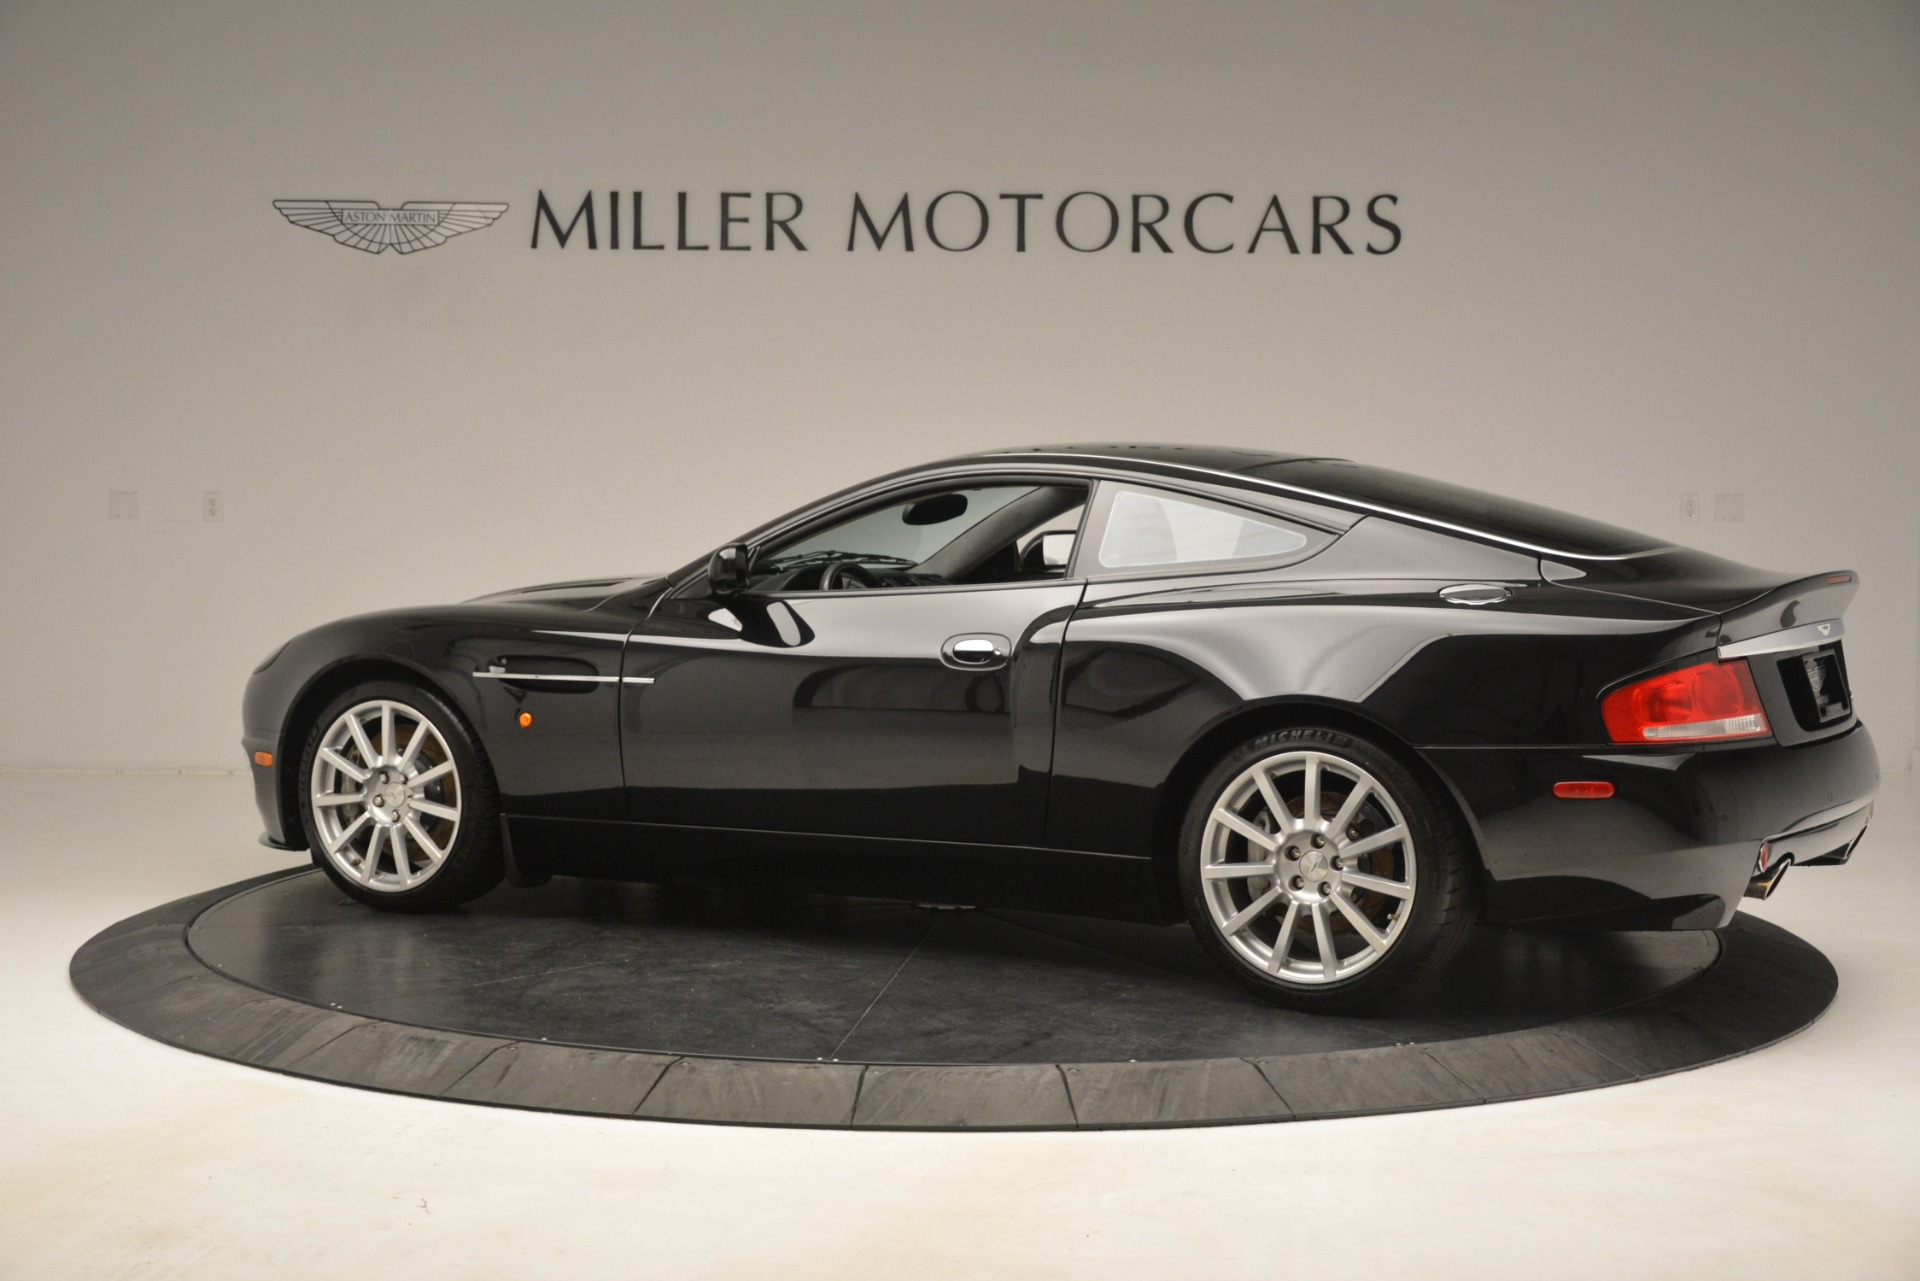 Used 2005 Aston Martin V12 Vanquish S Coupe For Sale In Greenwich, CT 3218_p4